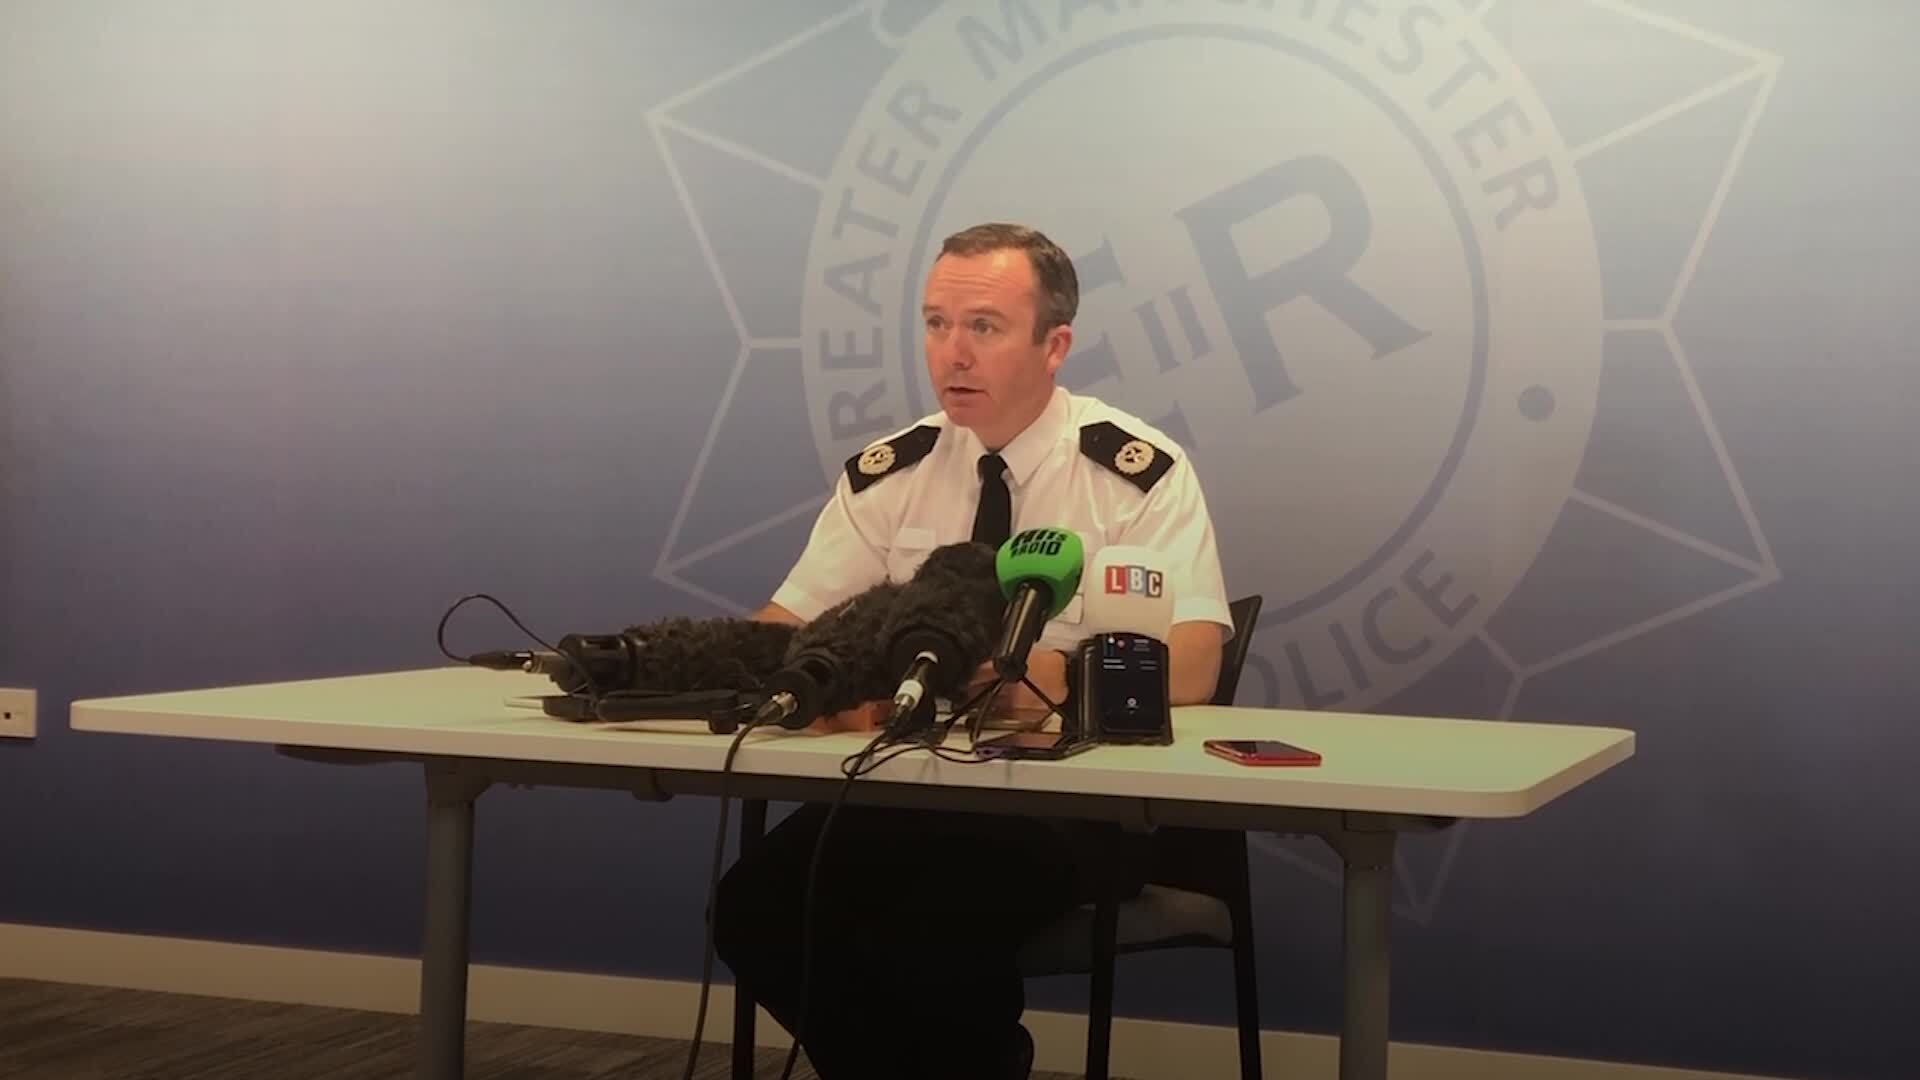 Manchester attack: Suspect detained under mental health act after three stabbed at Arndale Shopping Centre